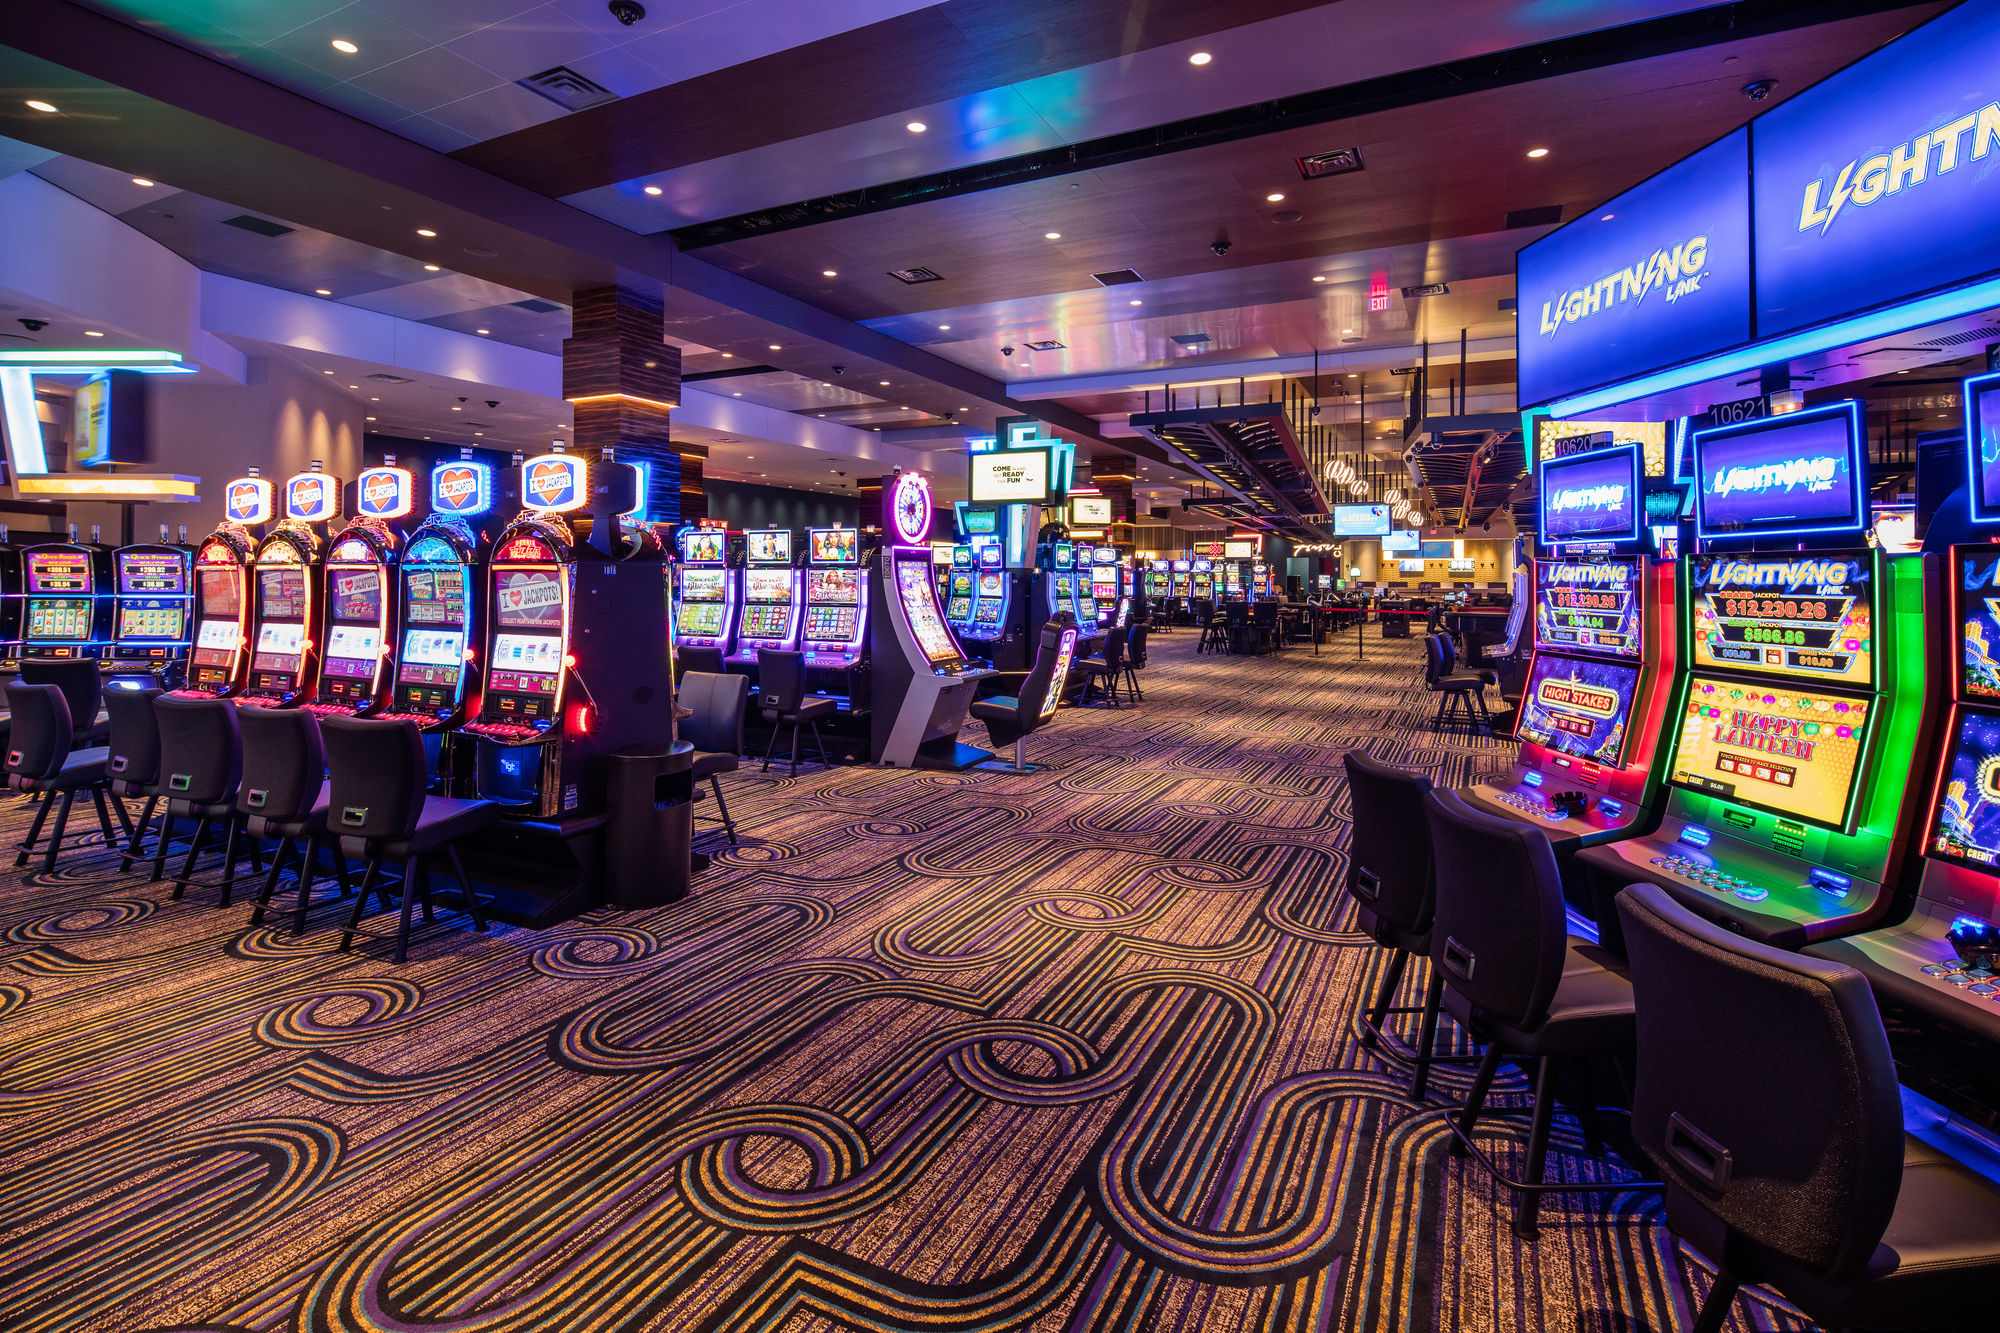 Quad cities casino coupon books gambling licenses washington state